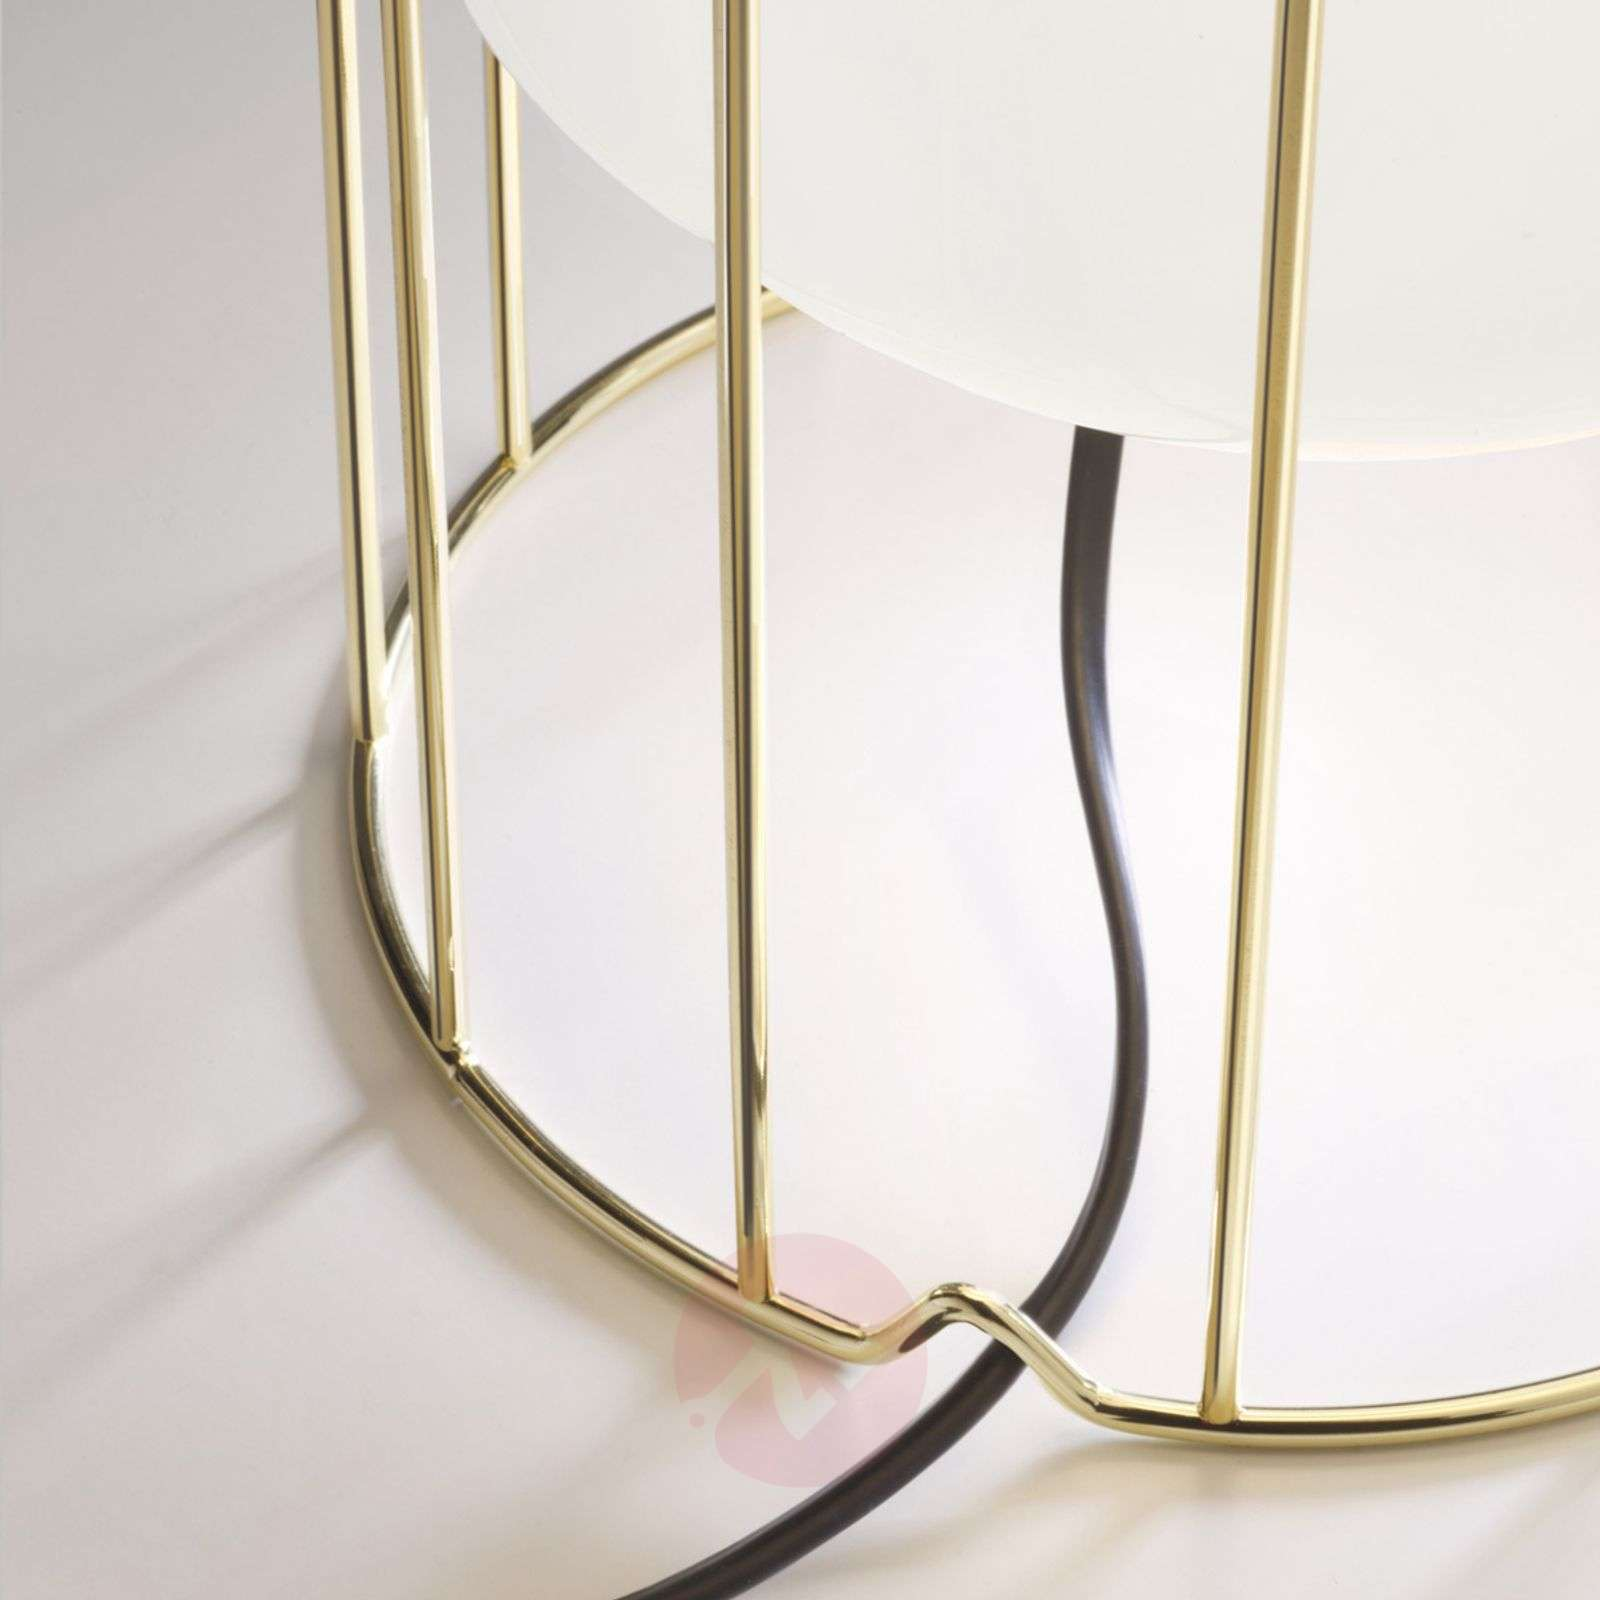 Aérostat designer table lamp with brass base-3503249X-01